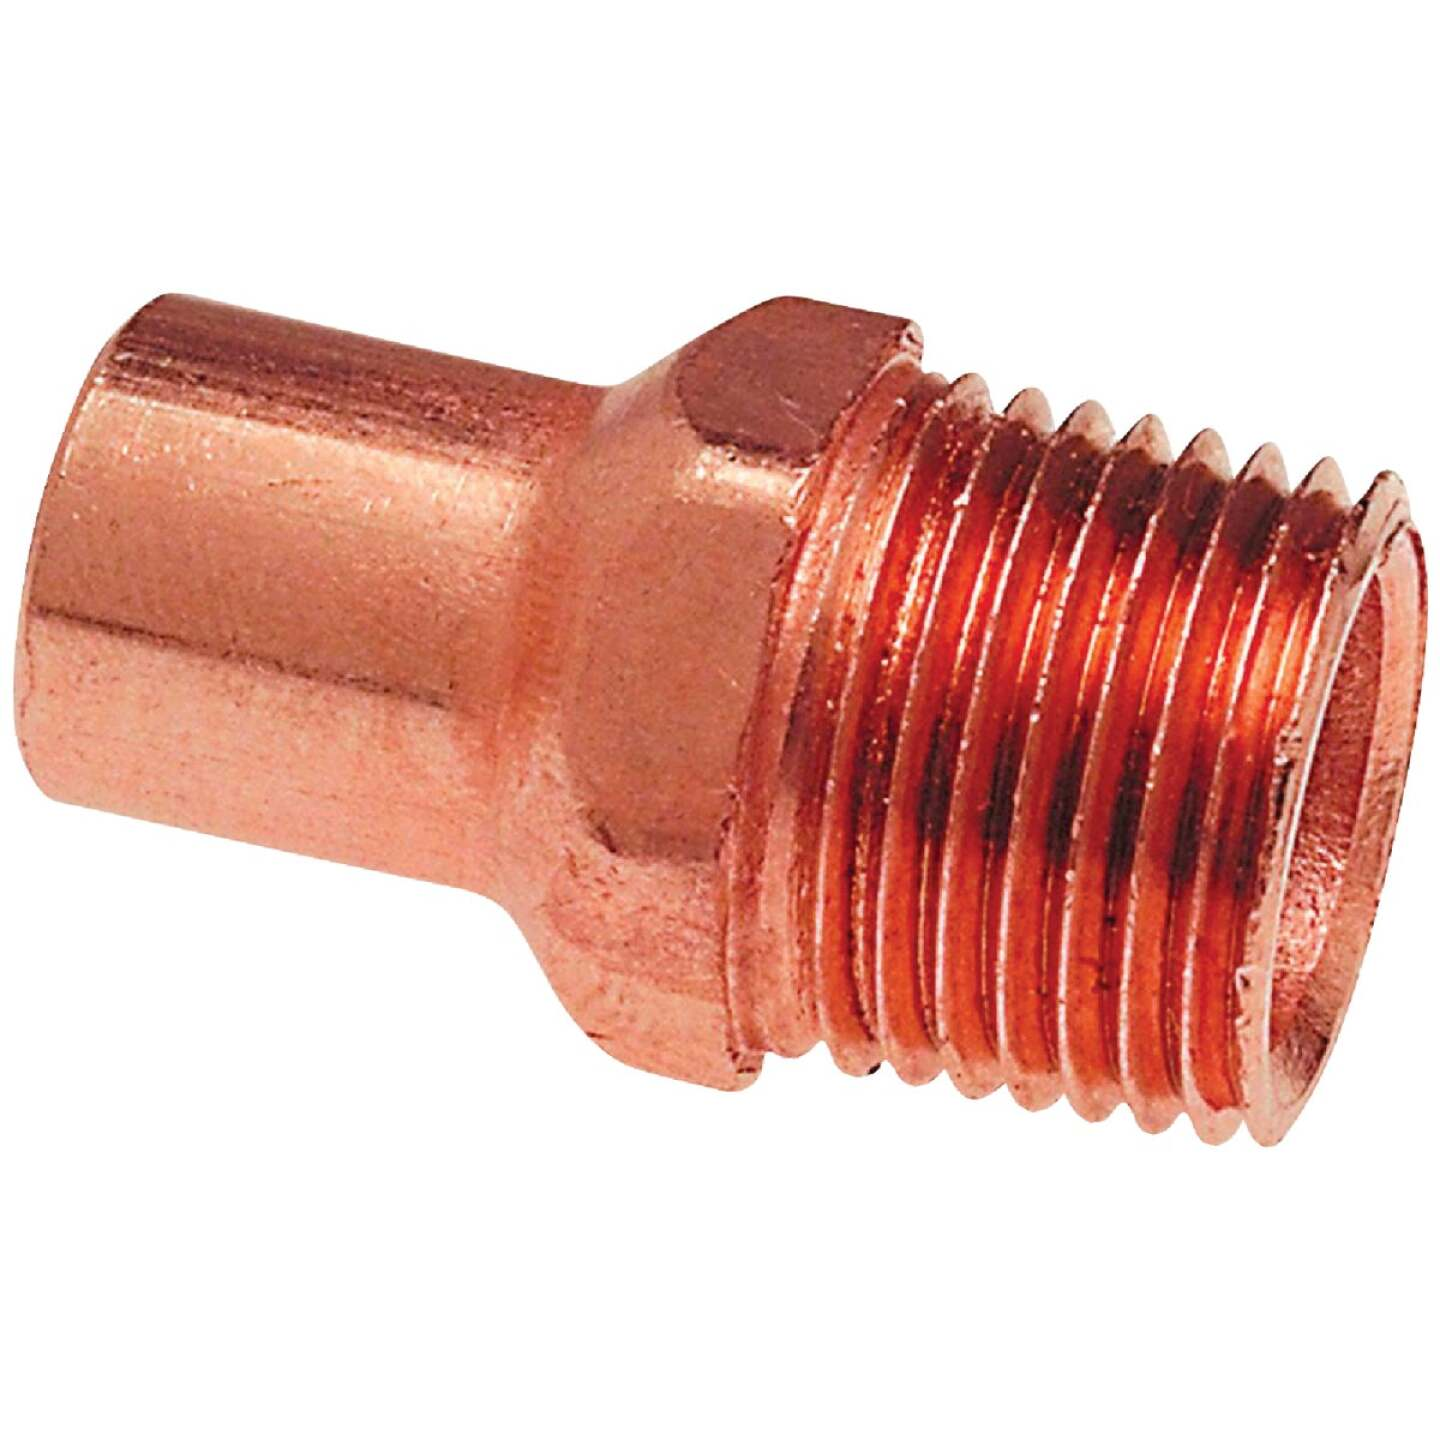 Mueller Streamline 1/2 In. FTGxM Copper Pipe Adapter Image 1